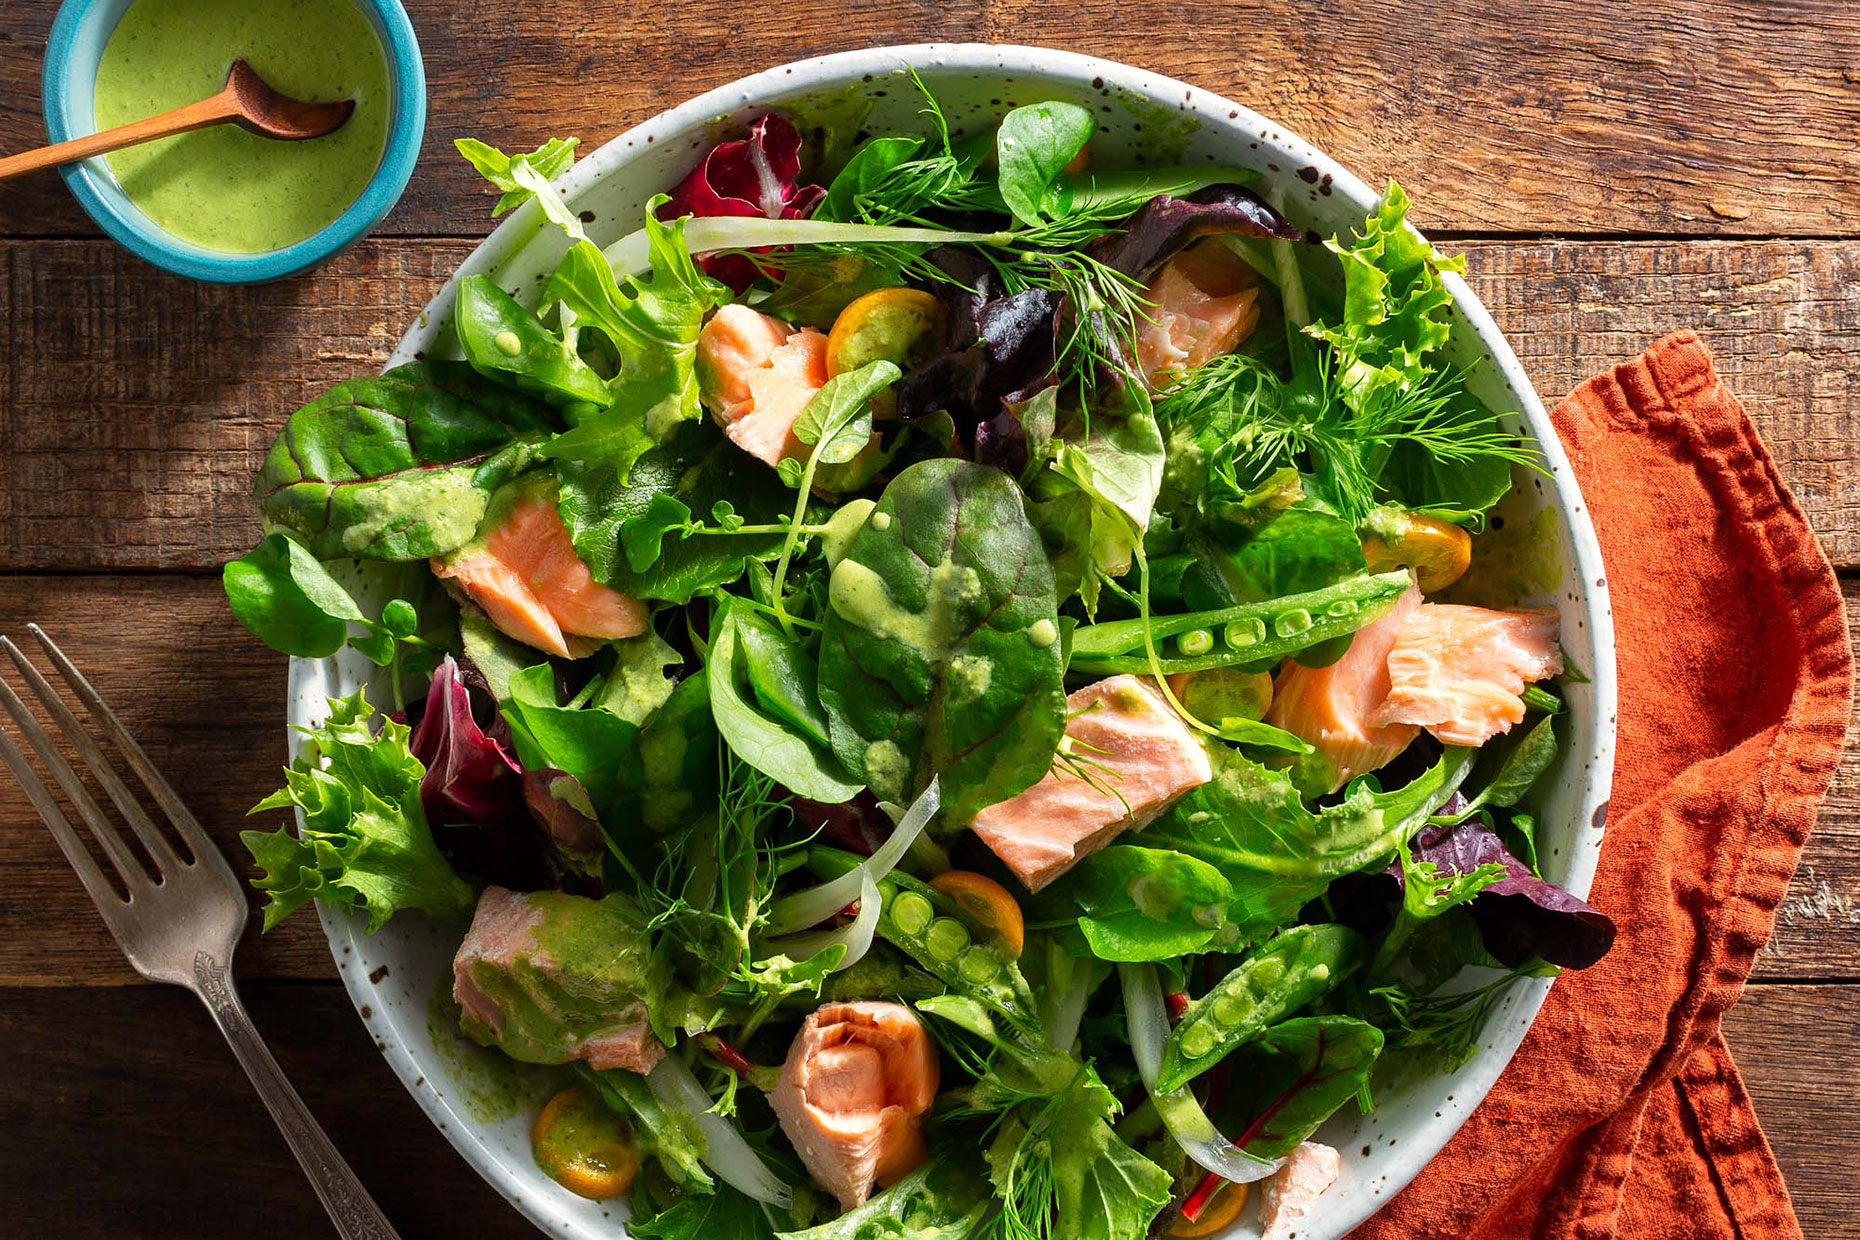 S182_Poached-Salmon-Salad-Tahini-Goddess-Dressing_Menu-Page